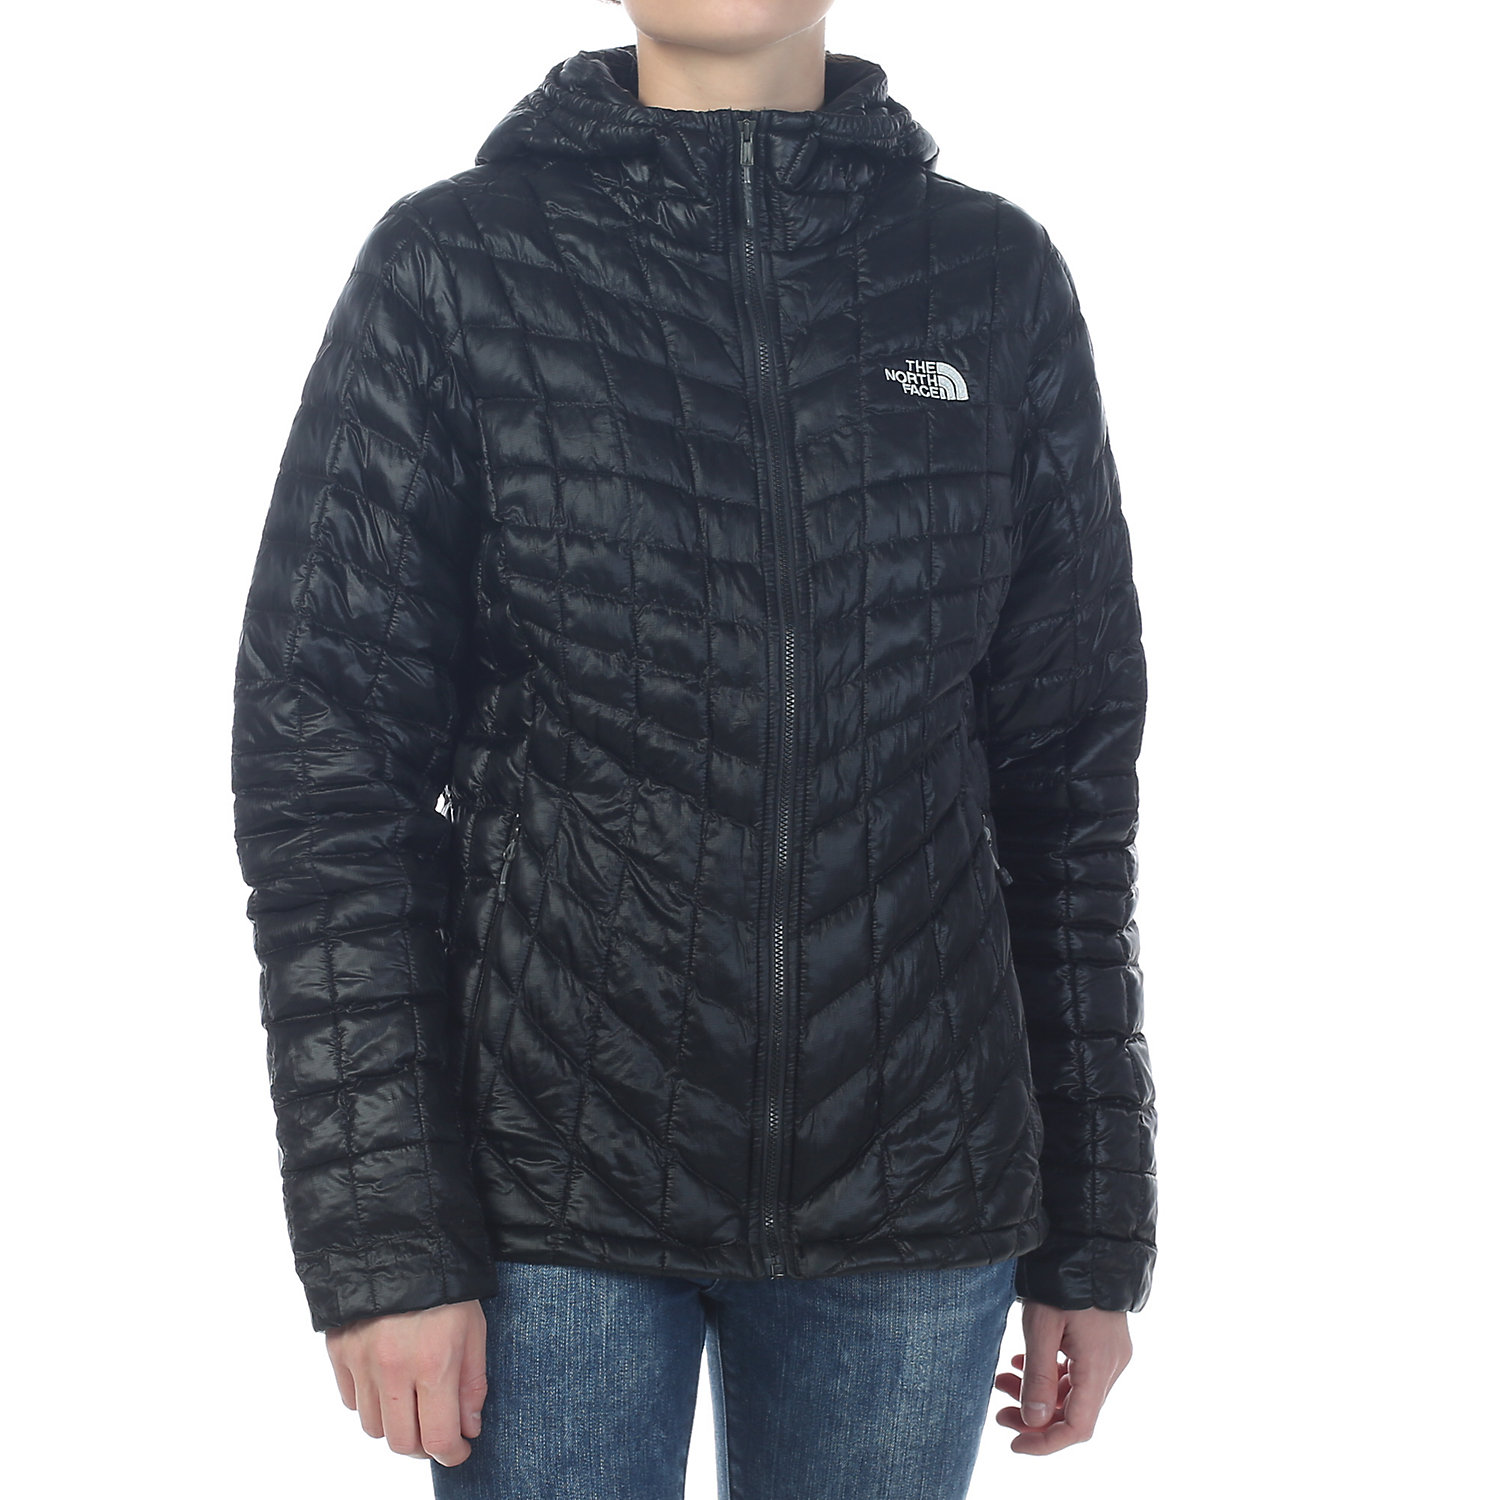 868a41d3e The North Face Women's ThermoBall Hoodie